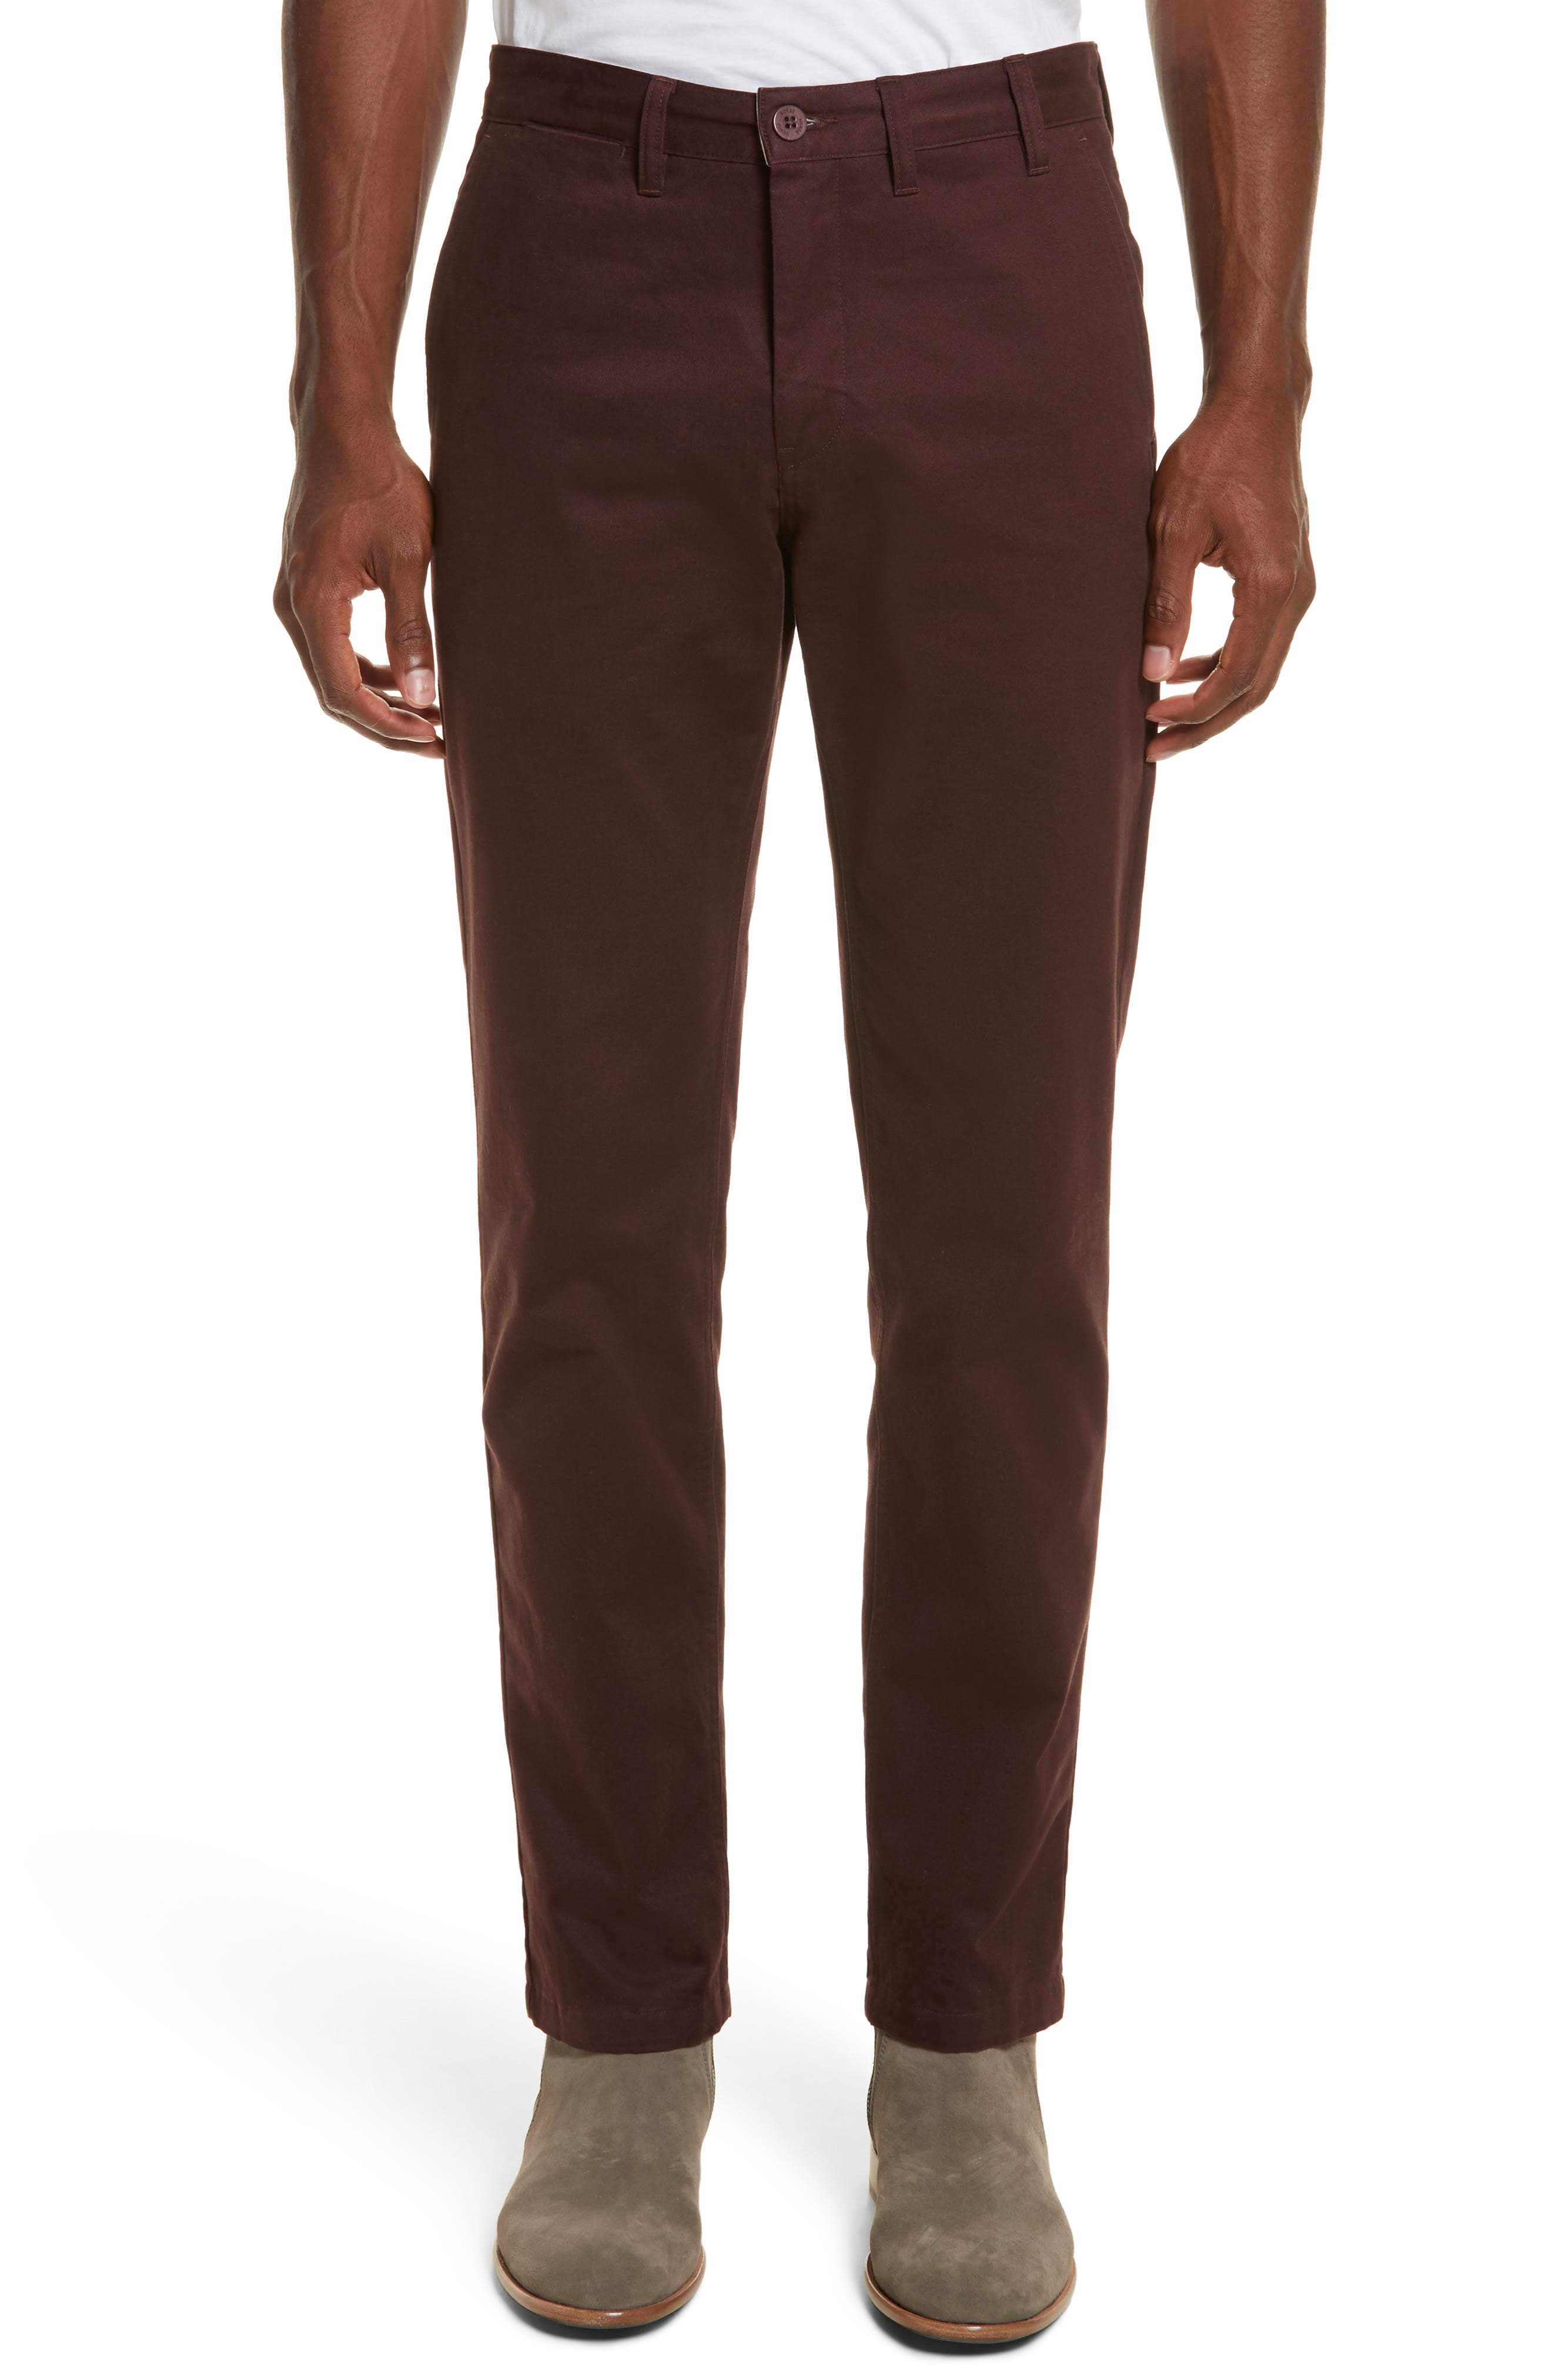 Aros Brushed Twill Chinos,                         Main,                         color, Hematite Red